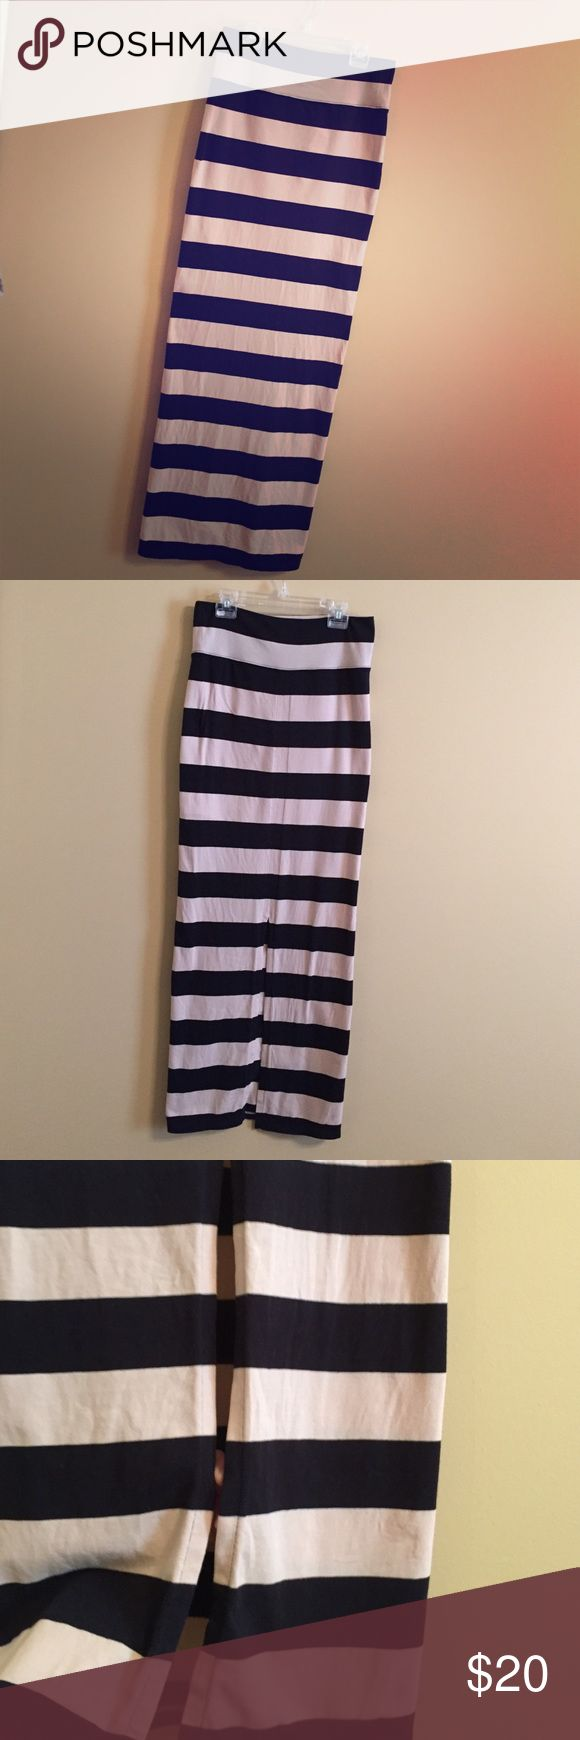 Free People Black and Tan Maxi Skirt Size S Free People Black and Tan Maxi Skirt Size S. Worn a handful of times, super cute and in EUC! Features a lining that stops above the knee and a slit in the back of the skirt (photo 3).  No rips, stains, holes, fading, or pilling! Waist band can be folded over to wear flats or left up for length to wear heels. I hate to let this beauty go! Comes from a smoke free home =) feel free to make an offer! Free People Skirts Maxi